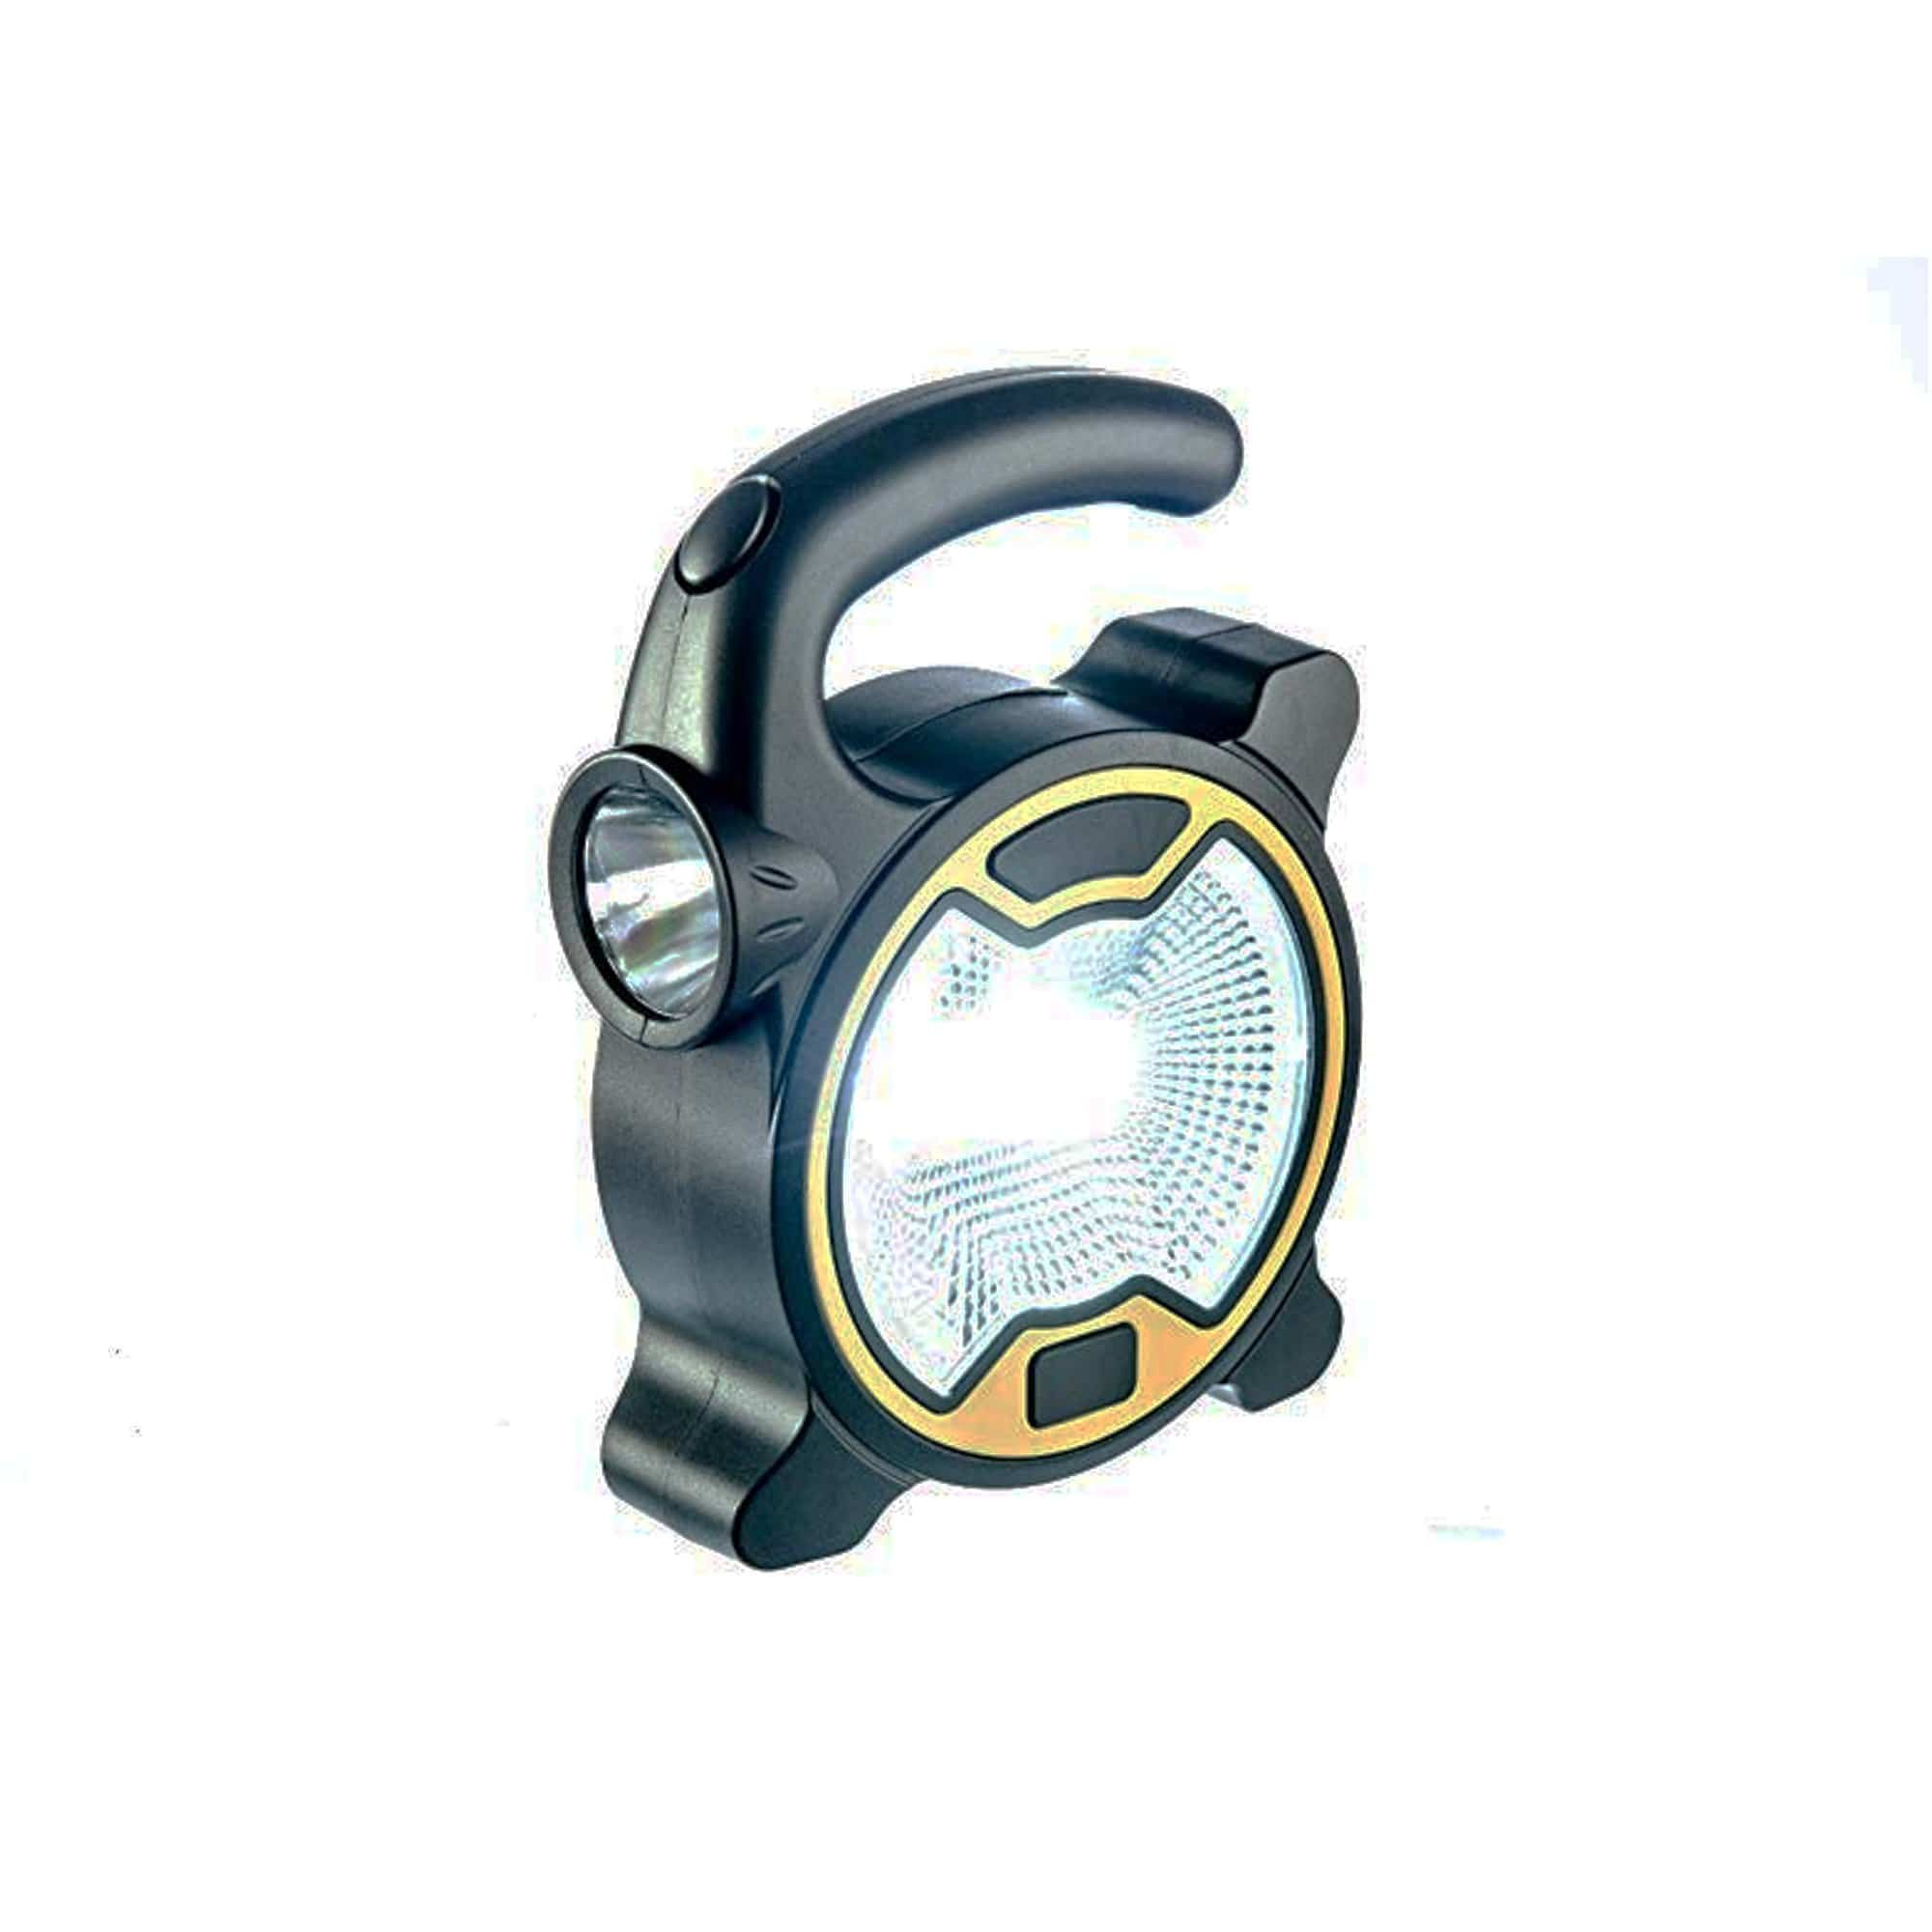 COB LED 2-1 Portable Work Light on